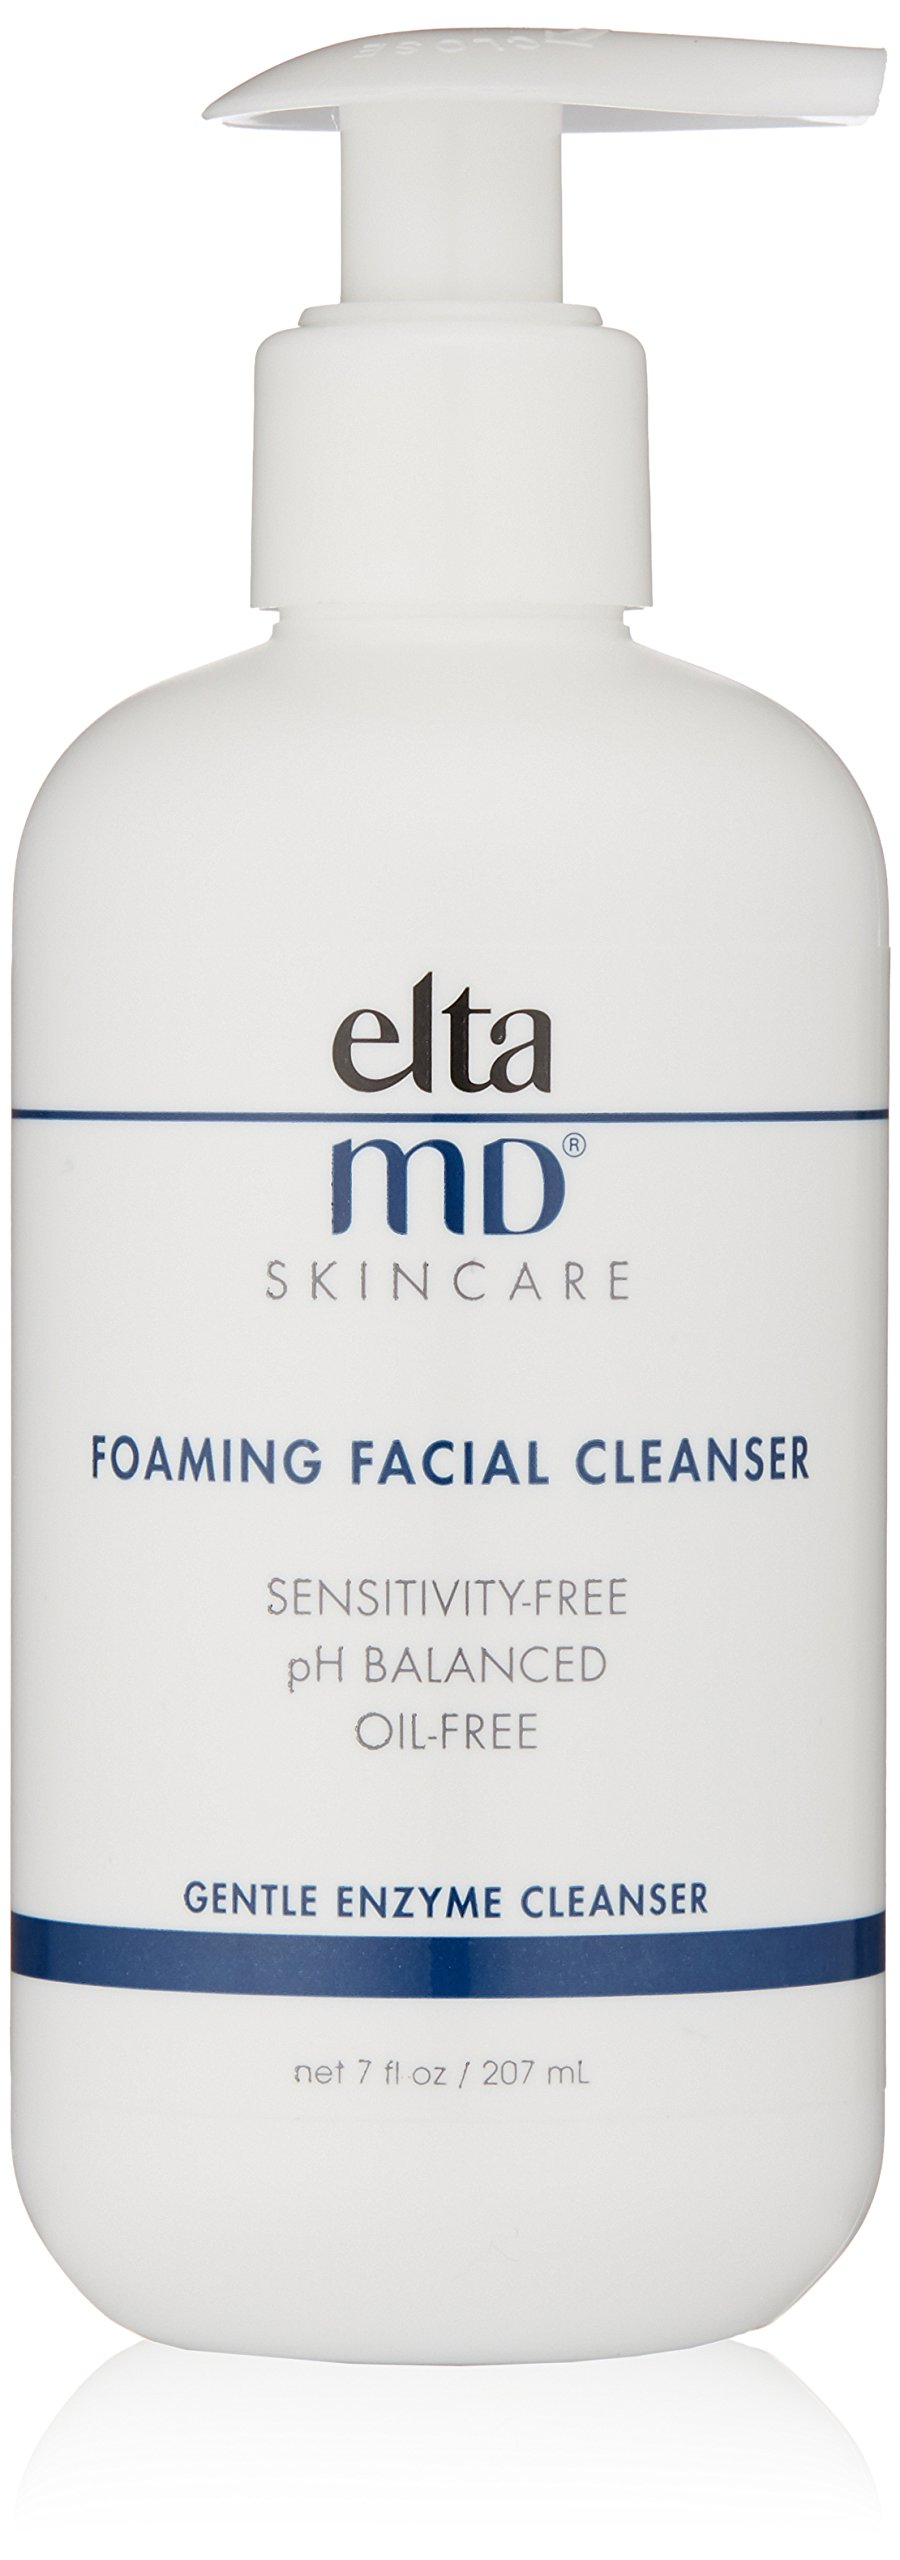 EltaMD Foaming Facial Cleanser, 7.0 oz